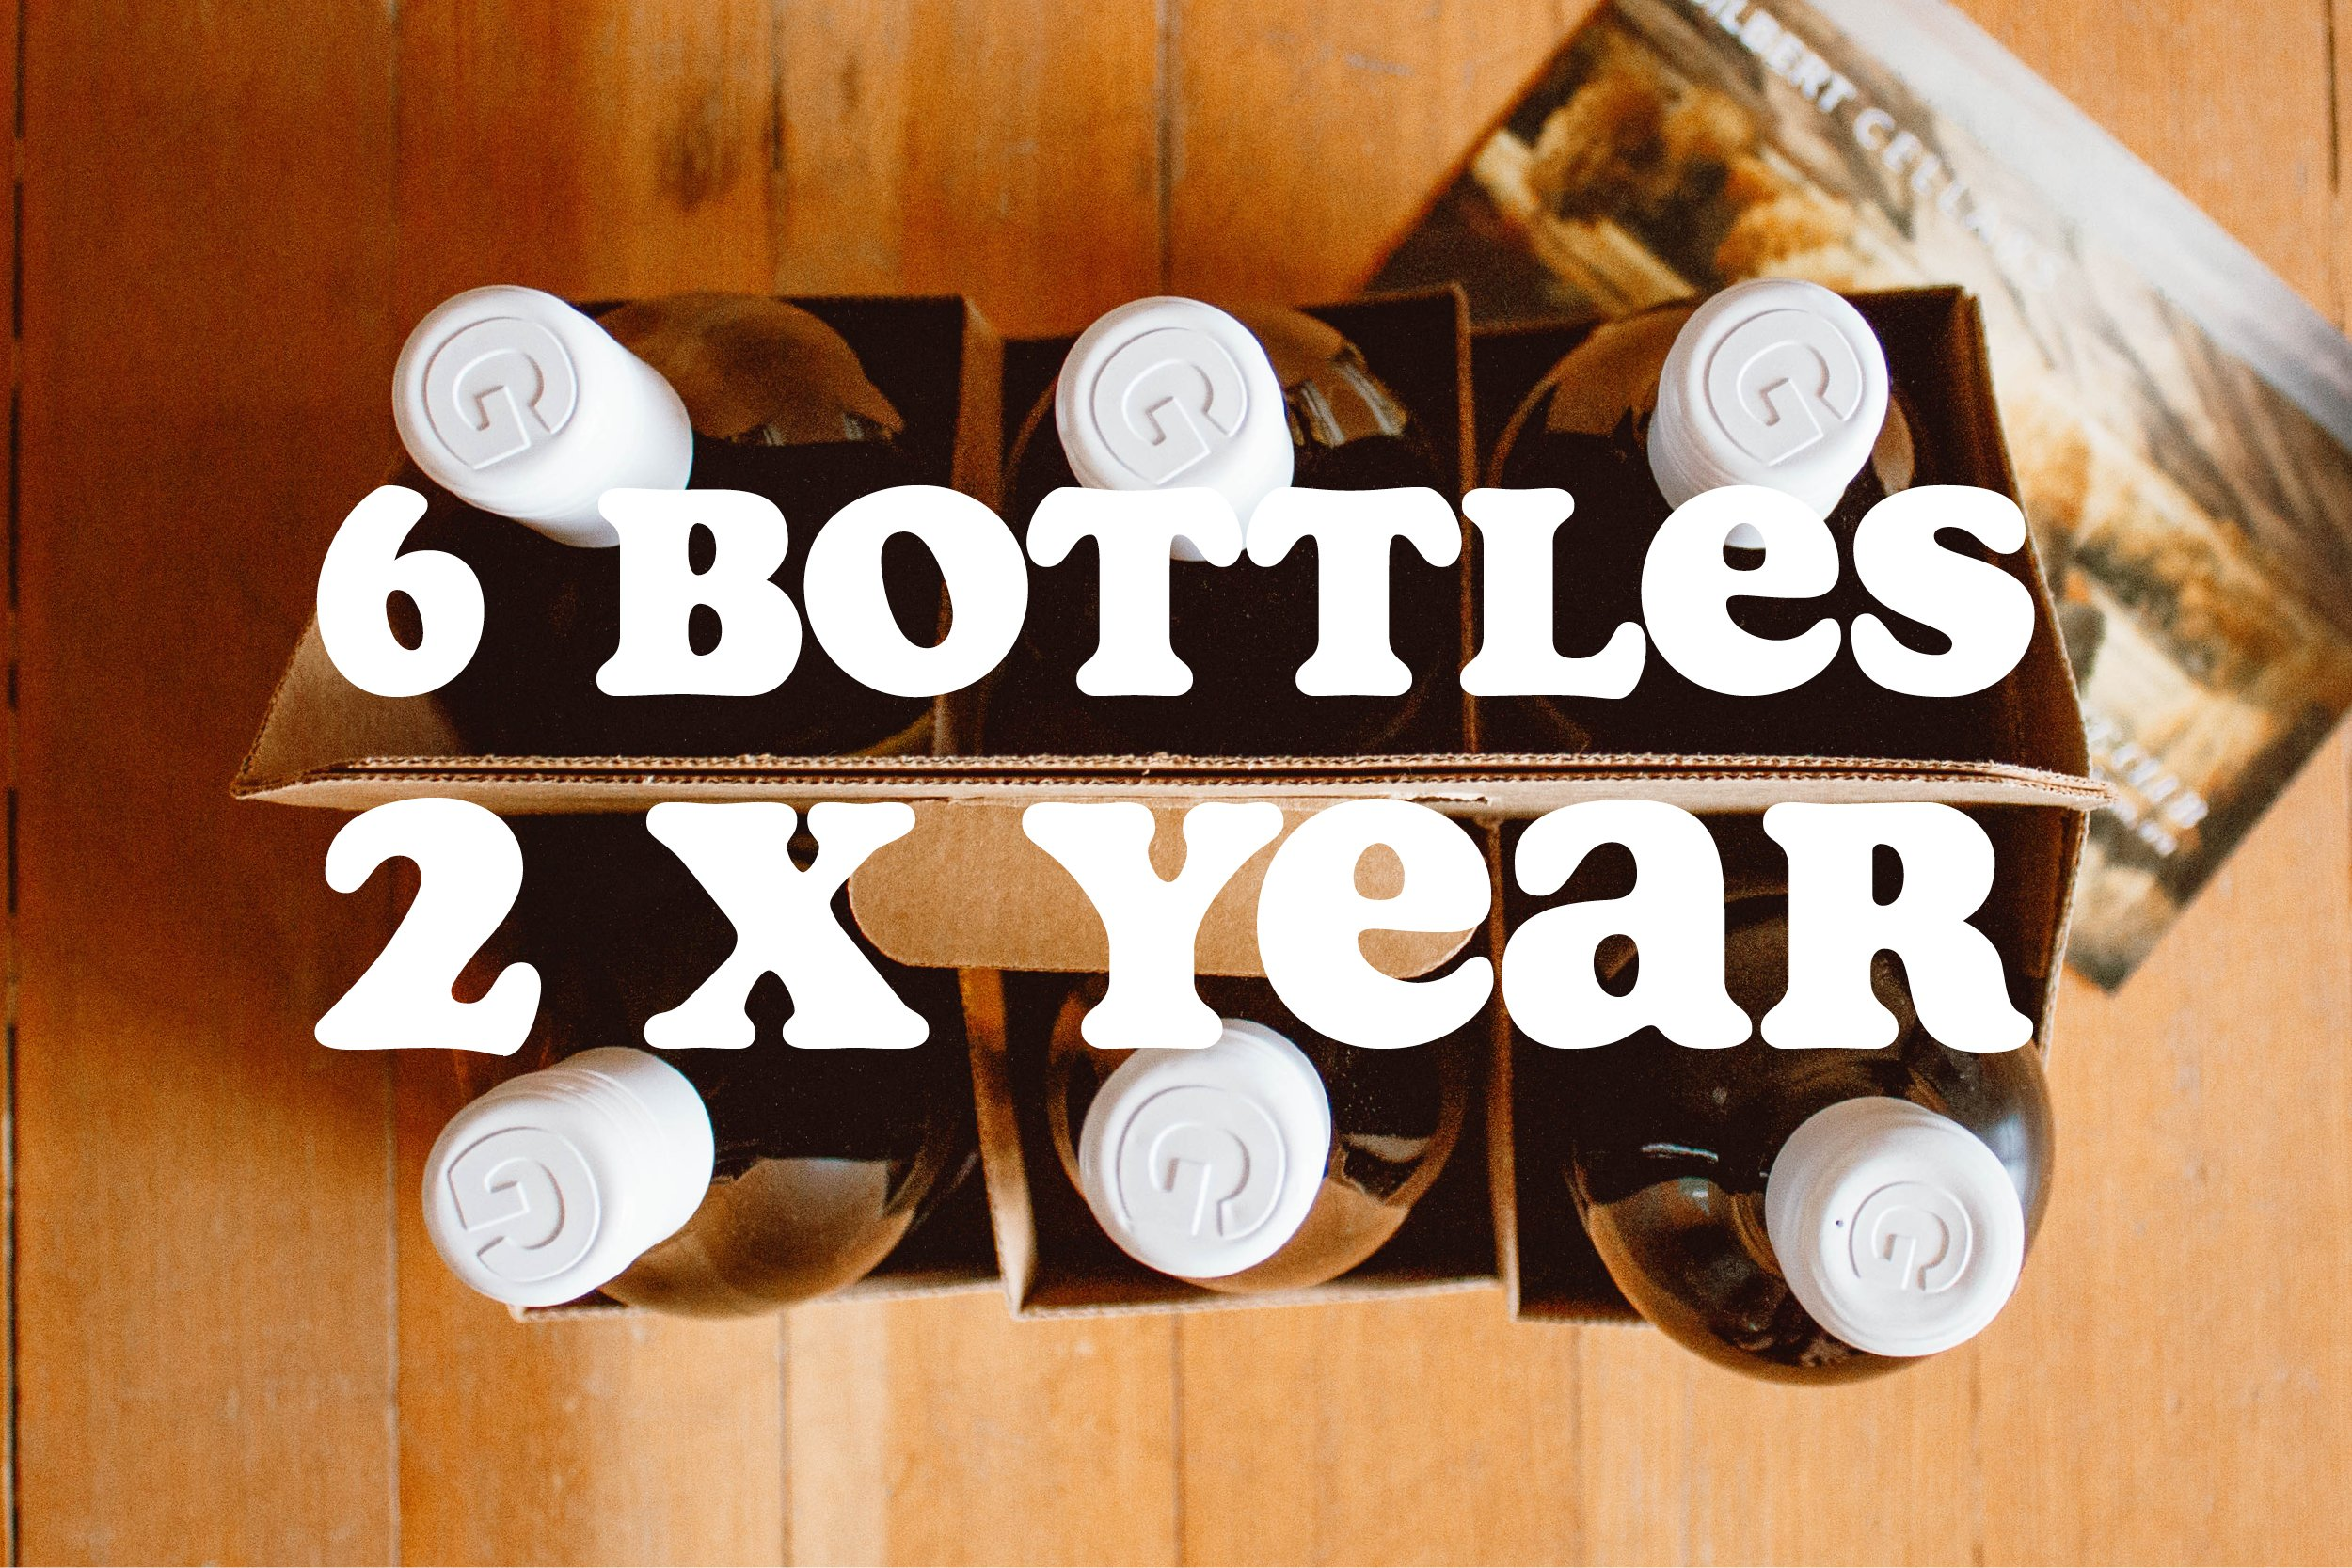 Six bottles, two times a year.